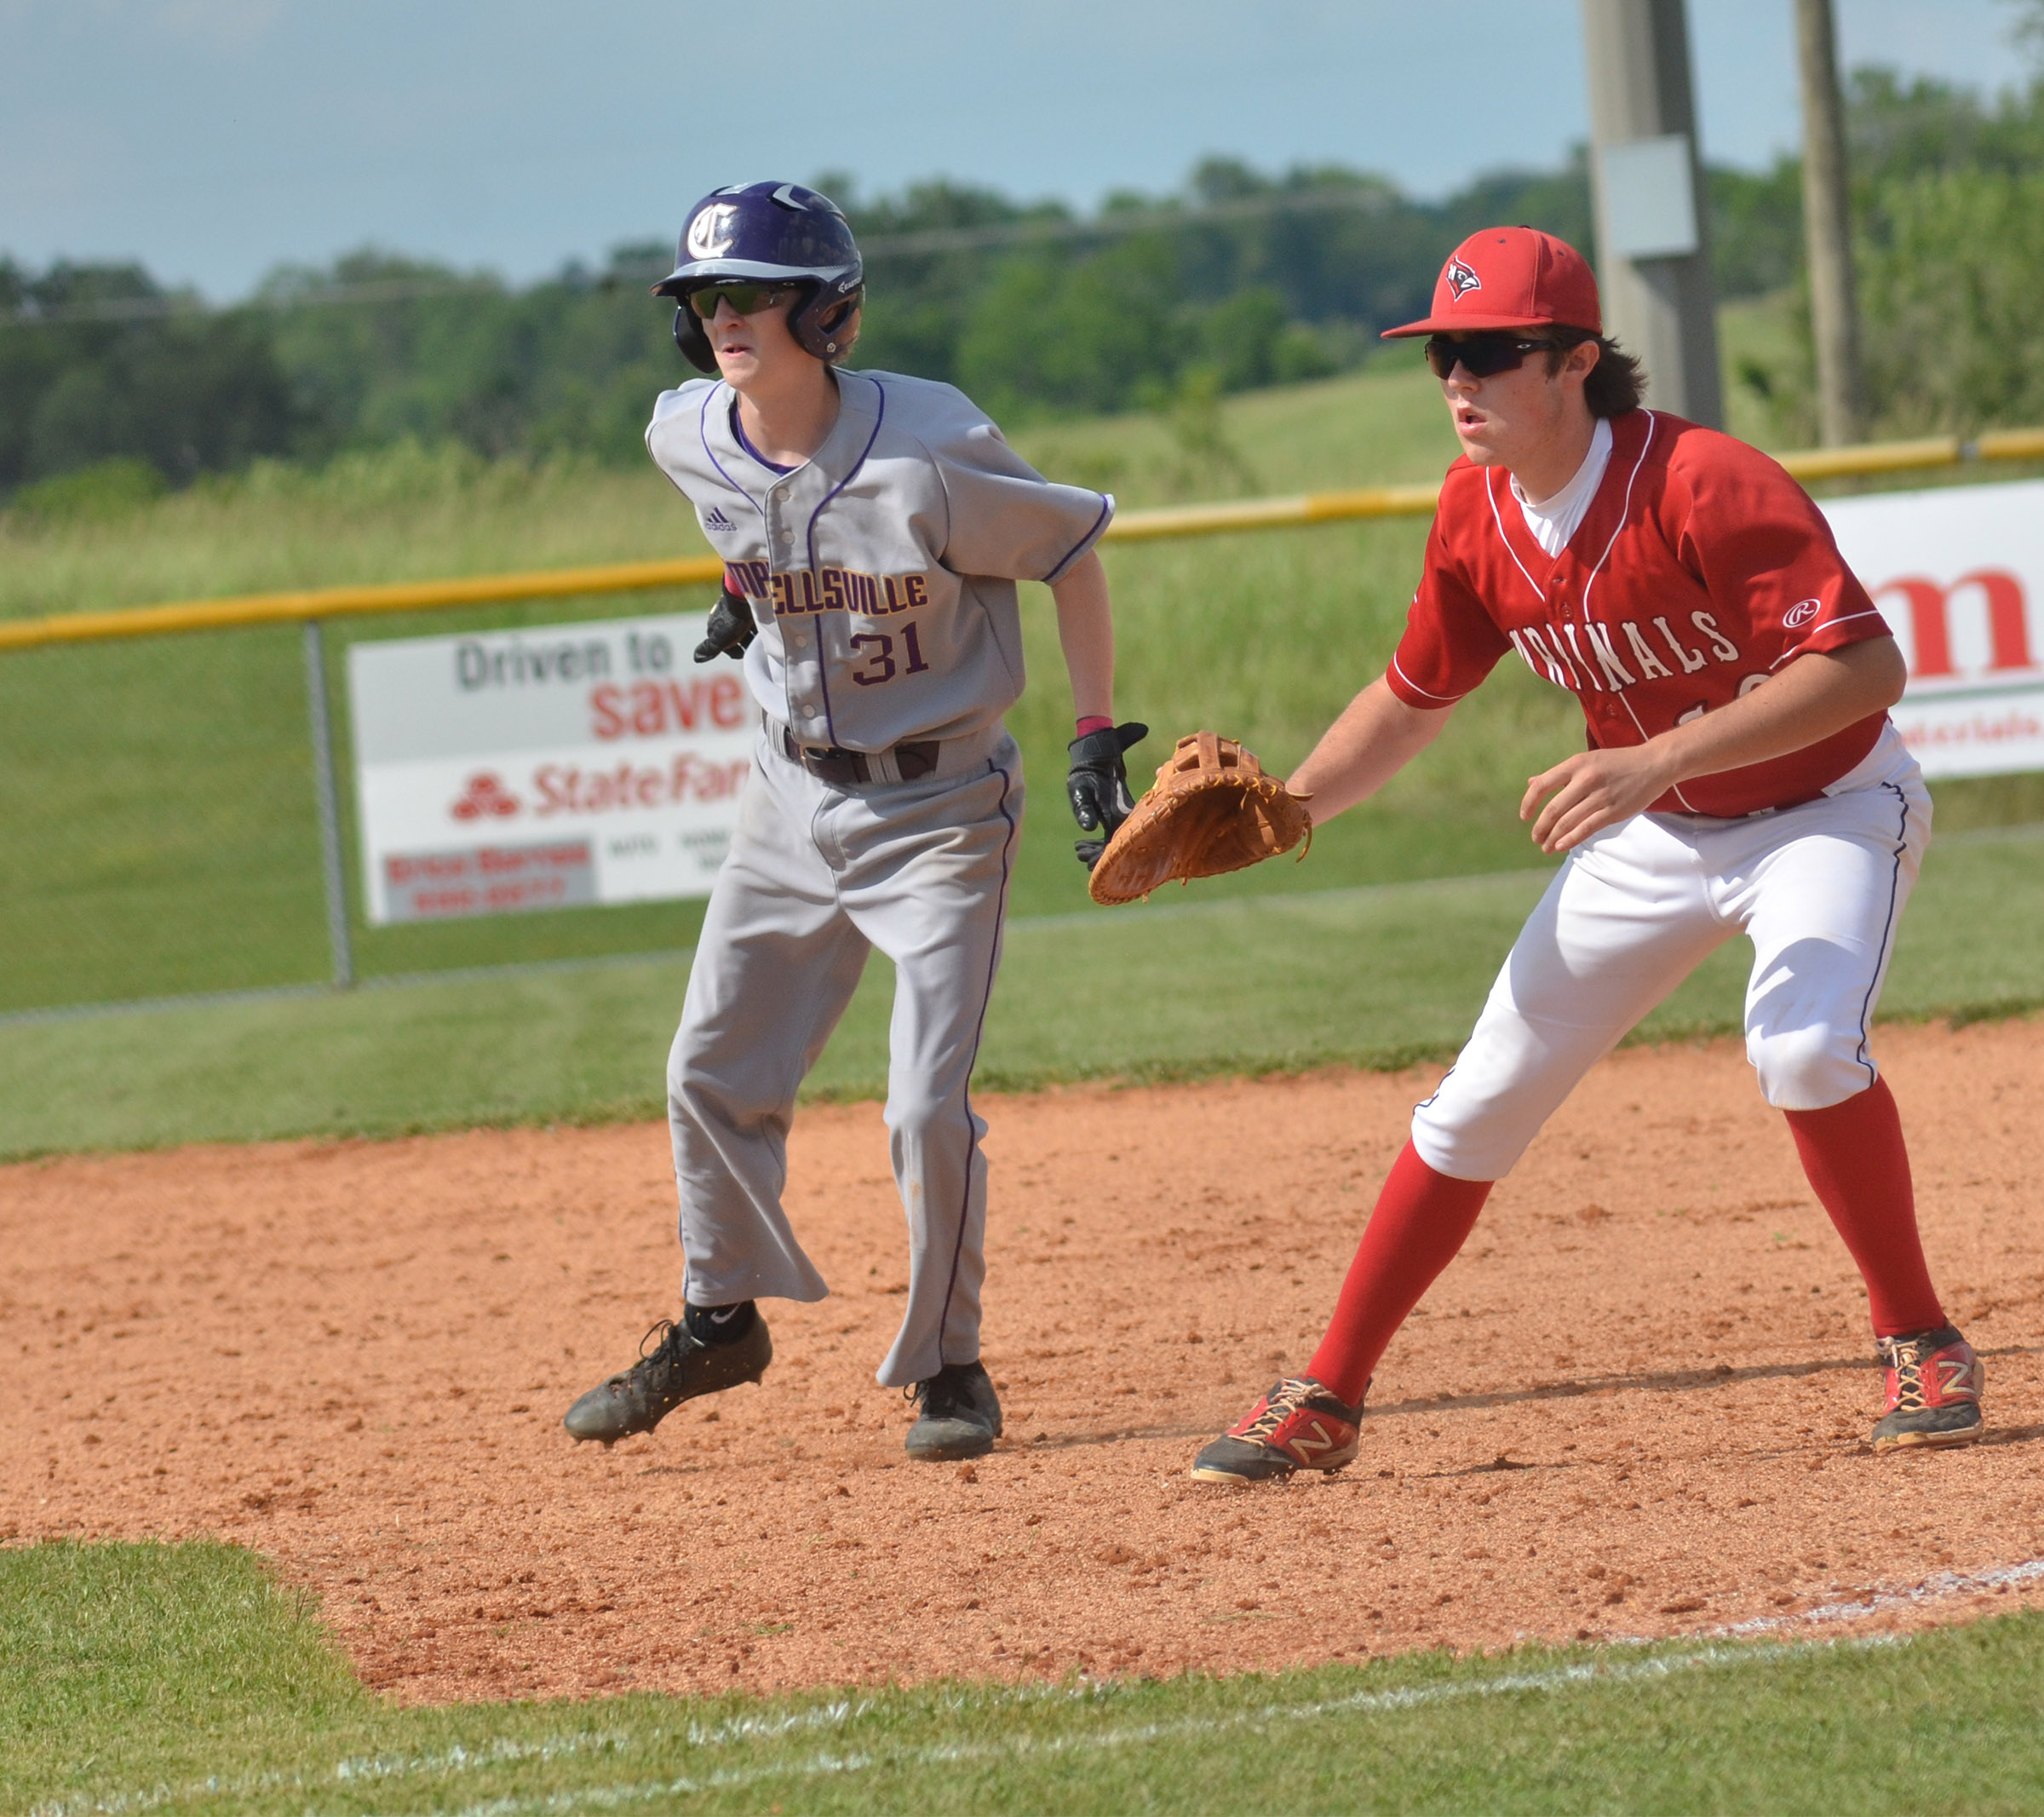 CHS sophomore Jackson Hinton looks to steal second.